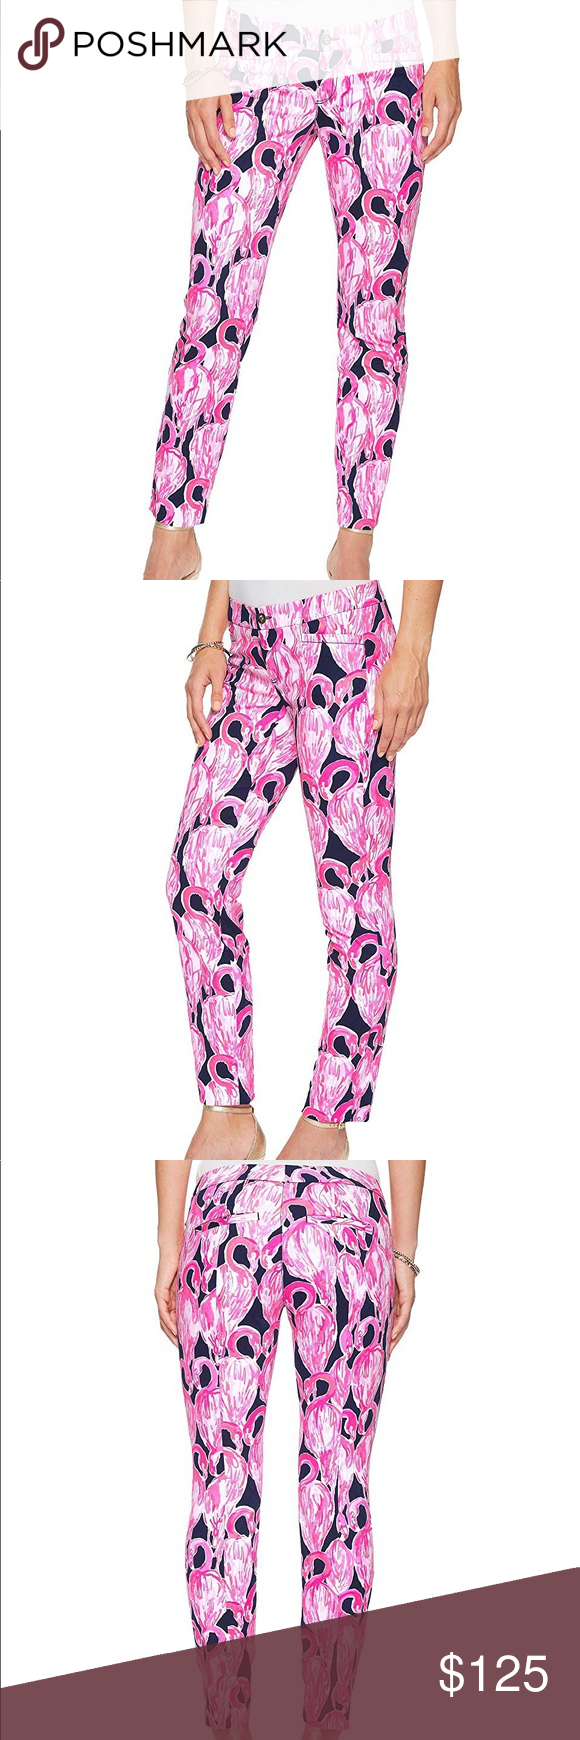 Lilly Pulitzer Kelly Skinny Ankle Pant An eye-catching pant to pair with a solid top. These pants are true outfit makers!  Printed ankle pant in a textured woven stretch cotton jacquard.  Color: High Tide Navy Vía Amor (much brighter than the picture seems!)  Low rise and skinny pencil leg.  Faux front slant and rear welt pockets.  Banded waist.  Zipper fly and gold-tone button closure.  90% cotton, 7% elasterell-p, 3% spandex.  Machine wash cold, tumble dry low.  Imported. Lilly Pulitzer Pants